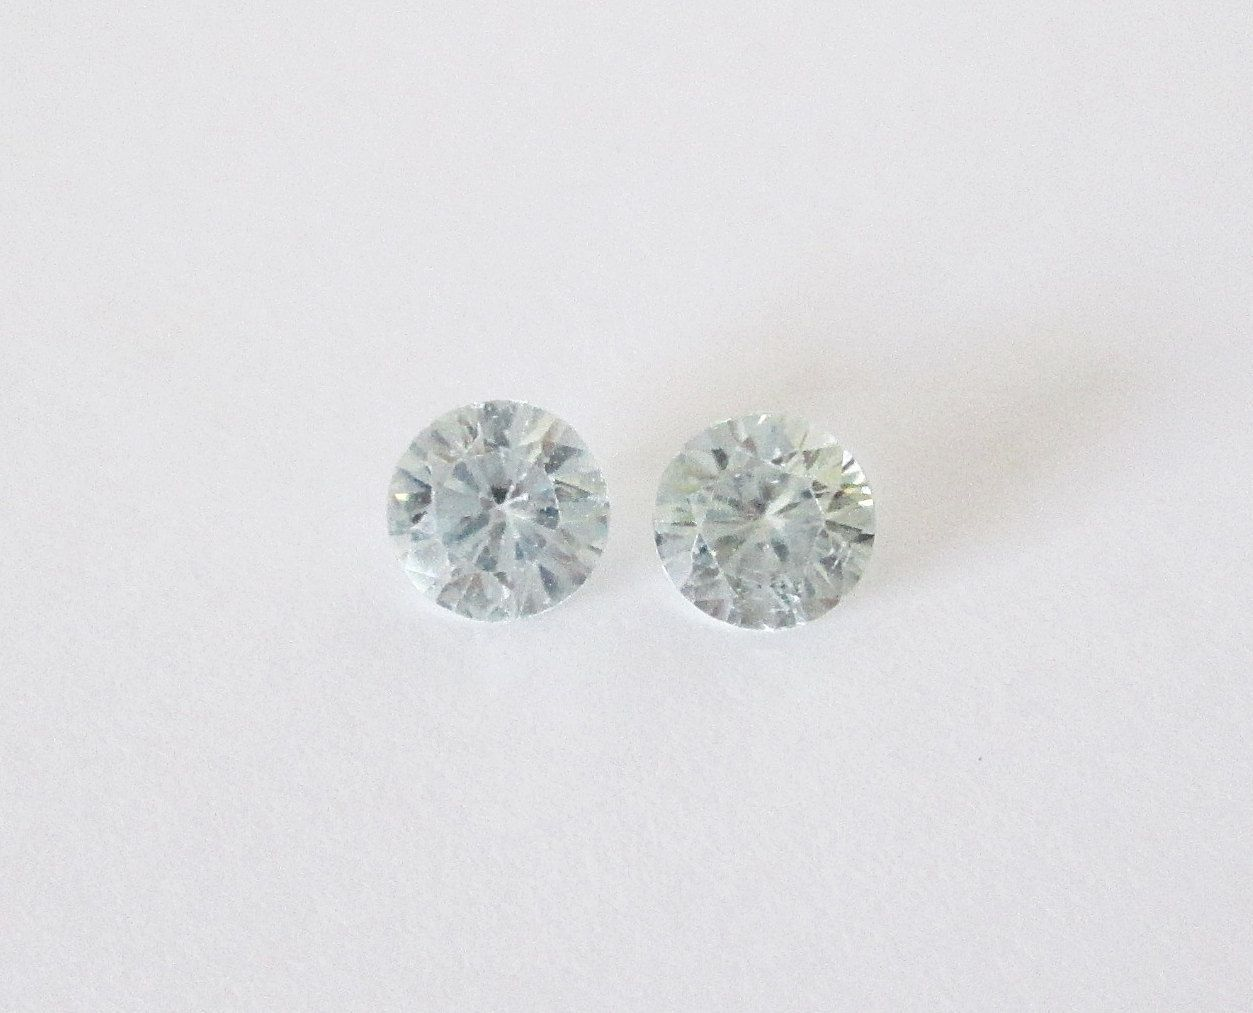 Natural Cambodian Blue Zircon 5mm Round matched Pair 1.30cts by BellaGems61 on Etsy